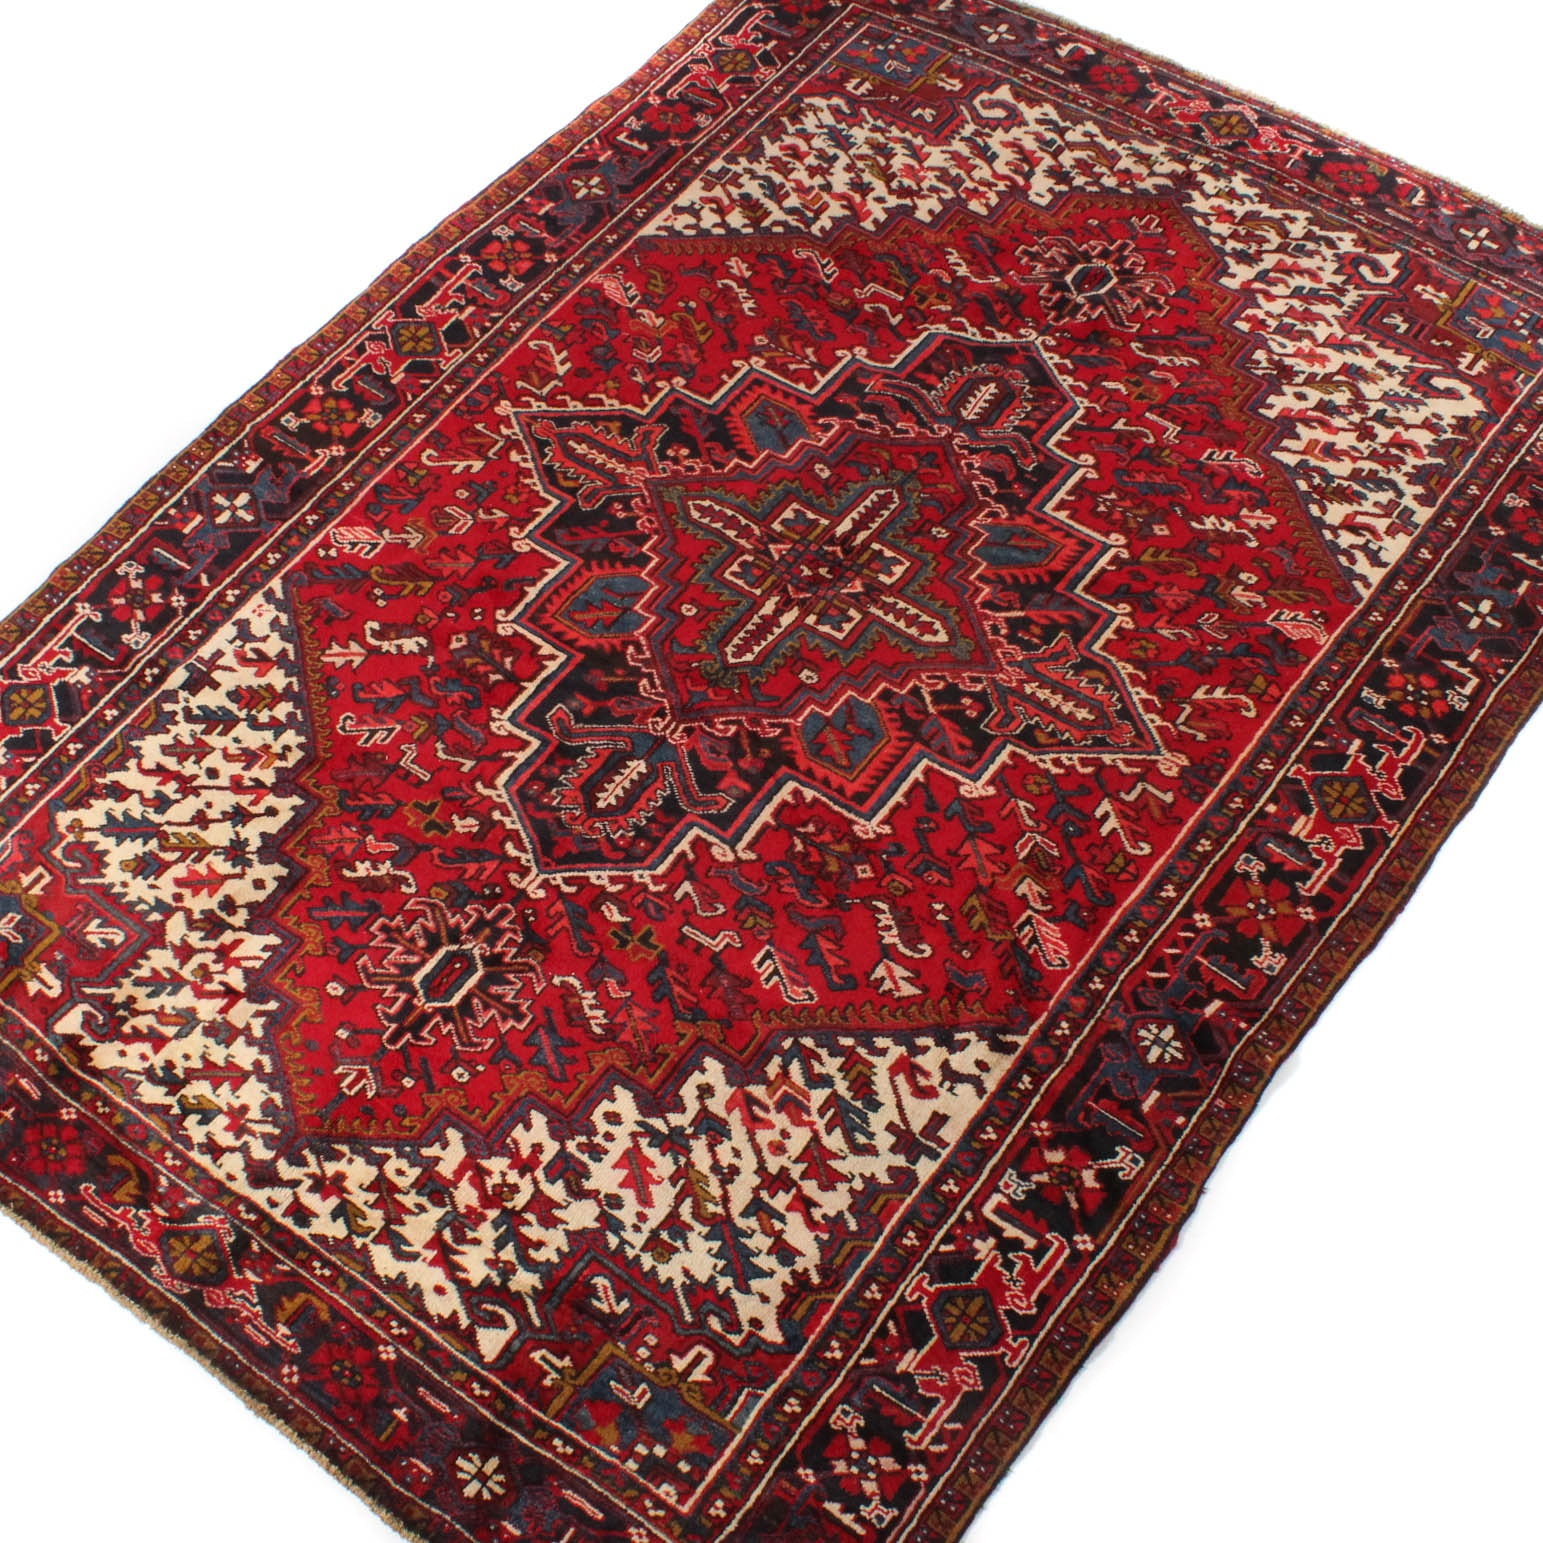 7' x 11' Hand-Knotted Persian Heriz Serapi Room Size Rug